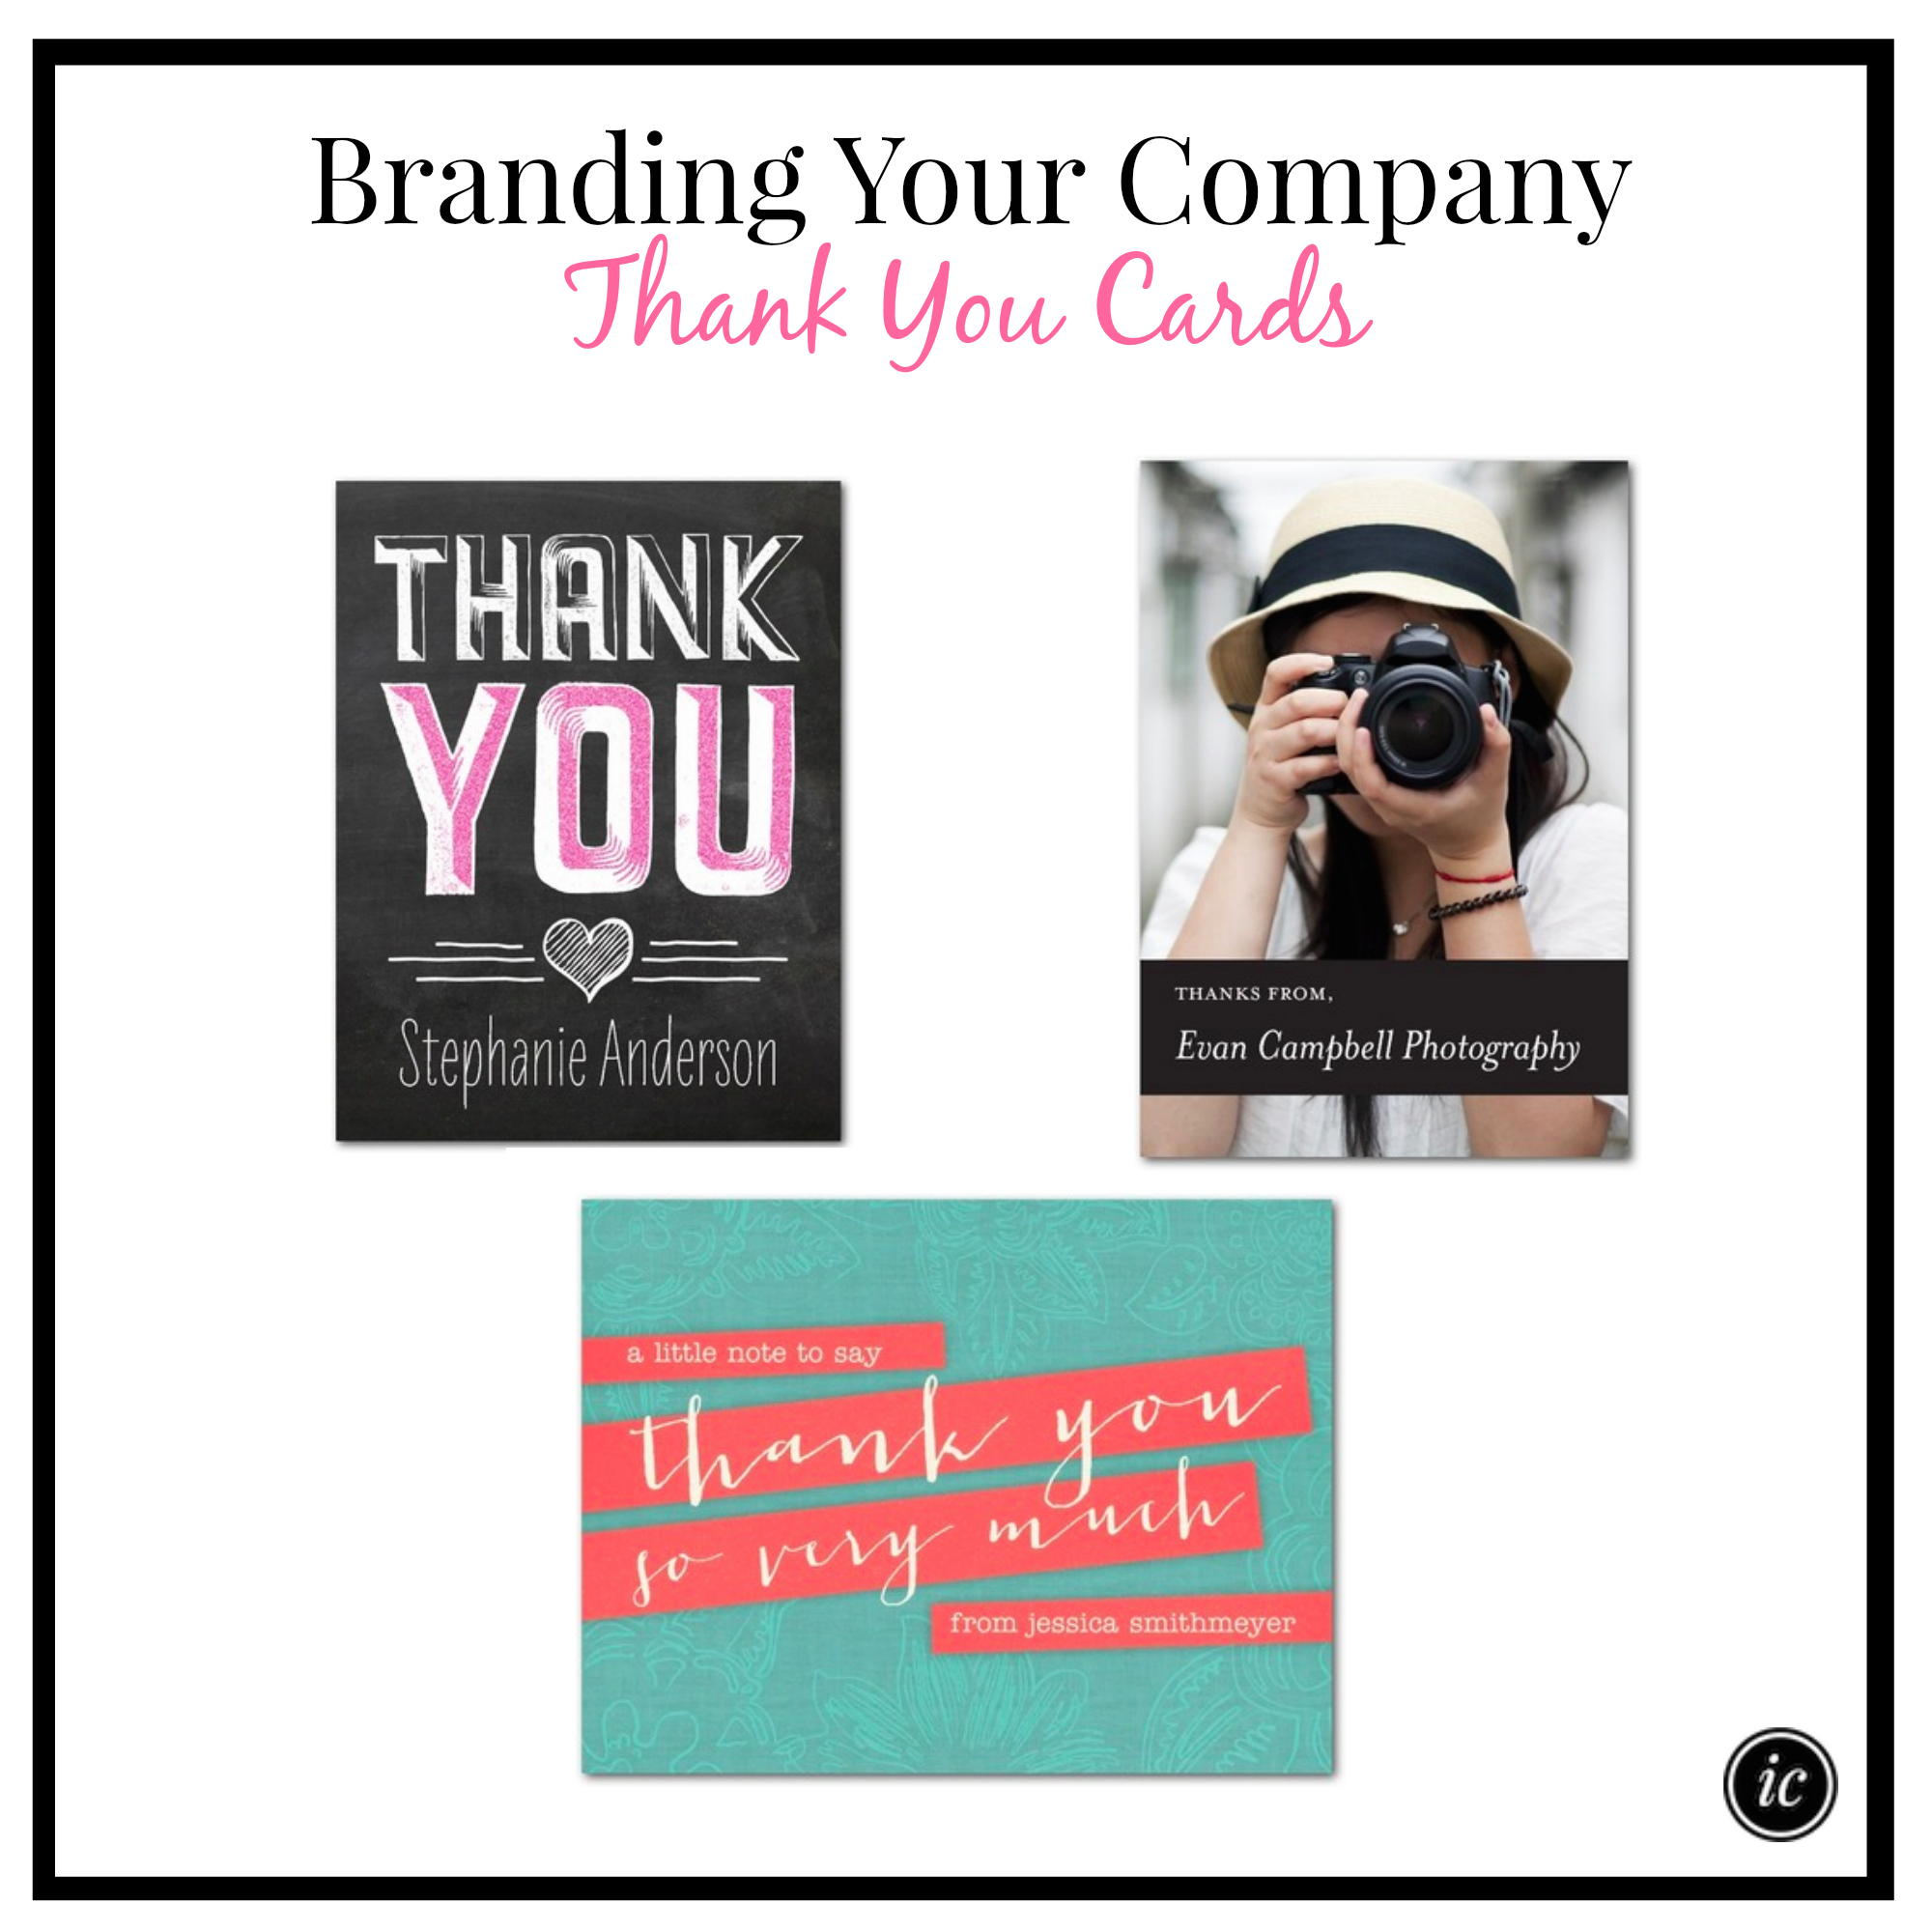 Branding Your Company Thank You Cards